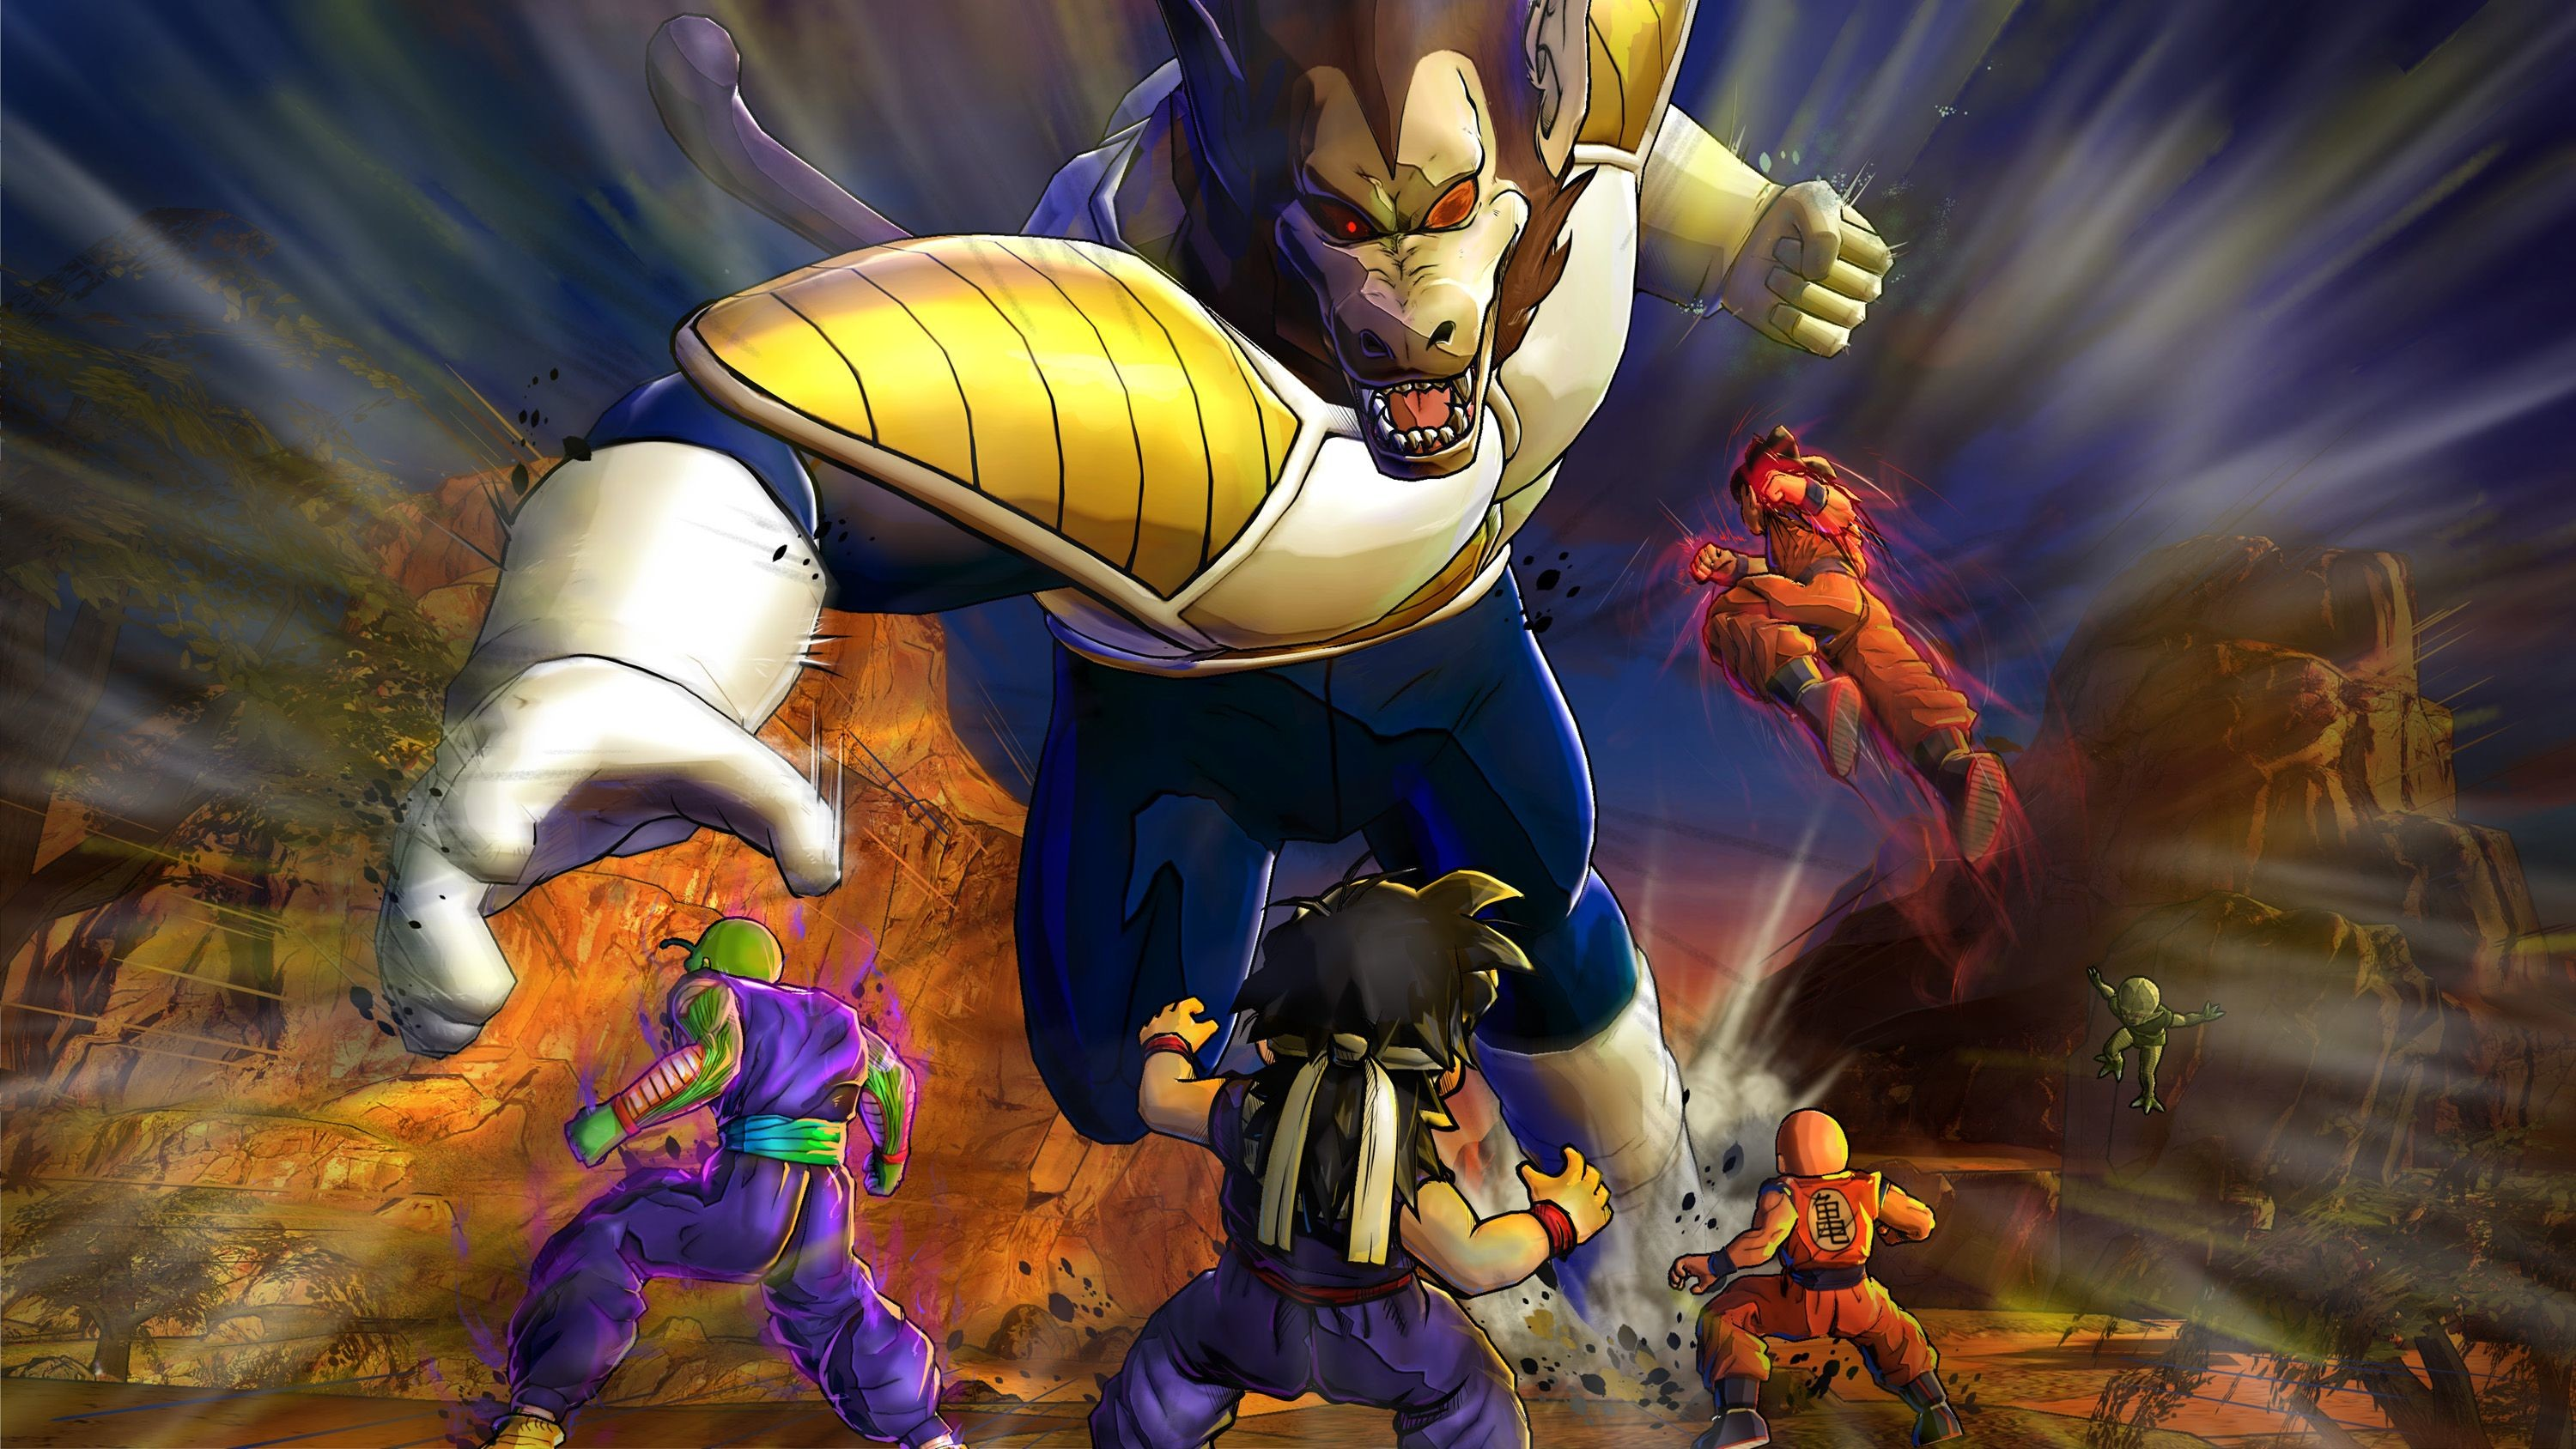 Dragon Ball Z Wallpaper for FB Cover – Cartoons Wallpapers